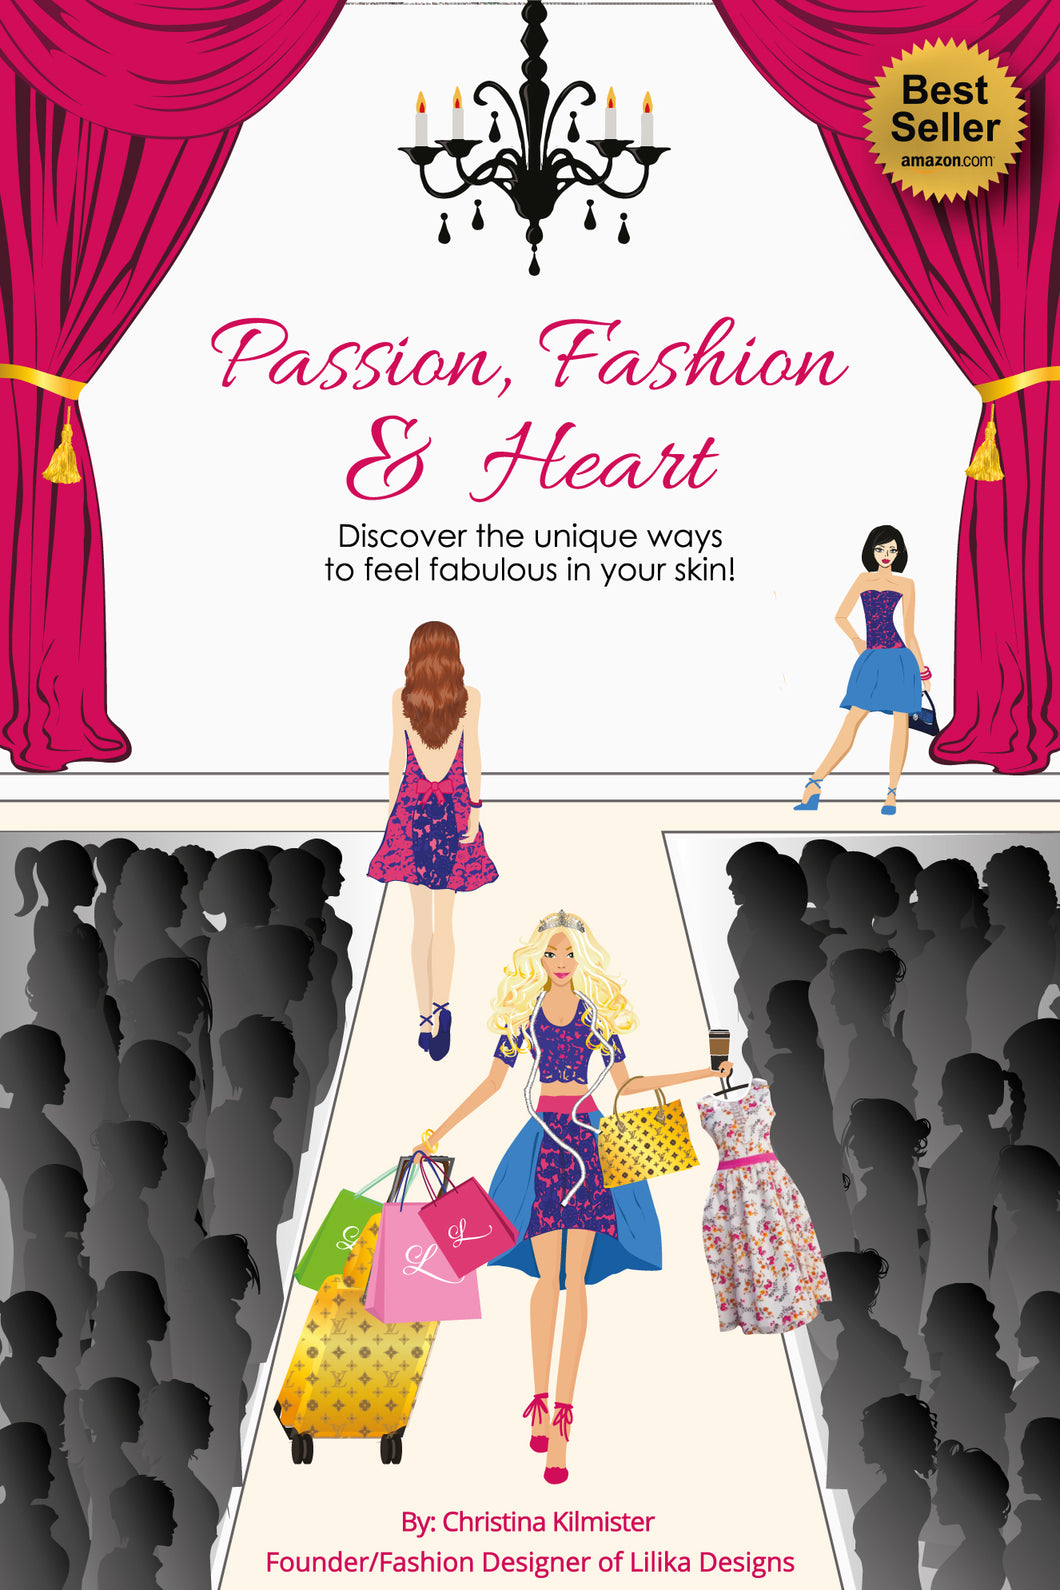 THE PAPERBACK - PASSION, FASHION & HEART